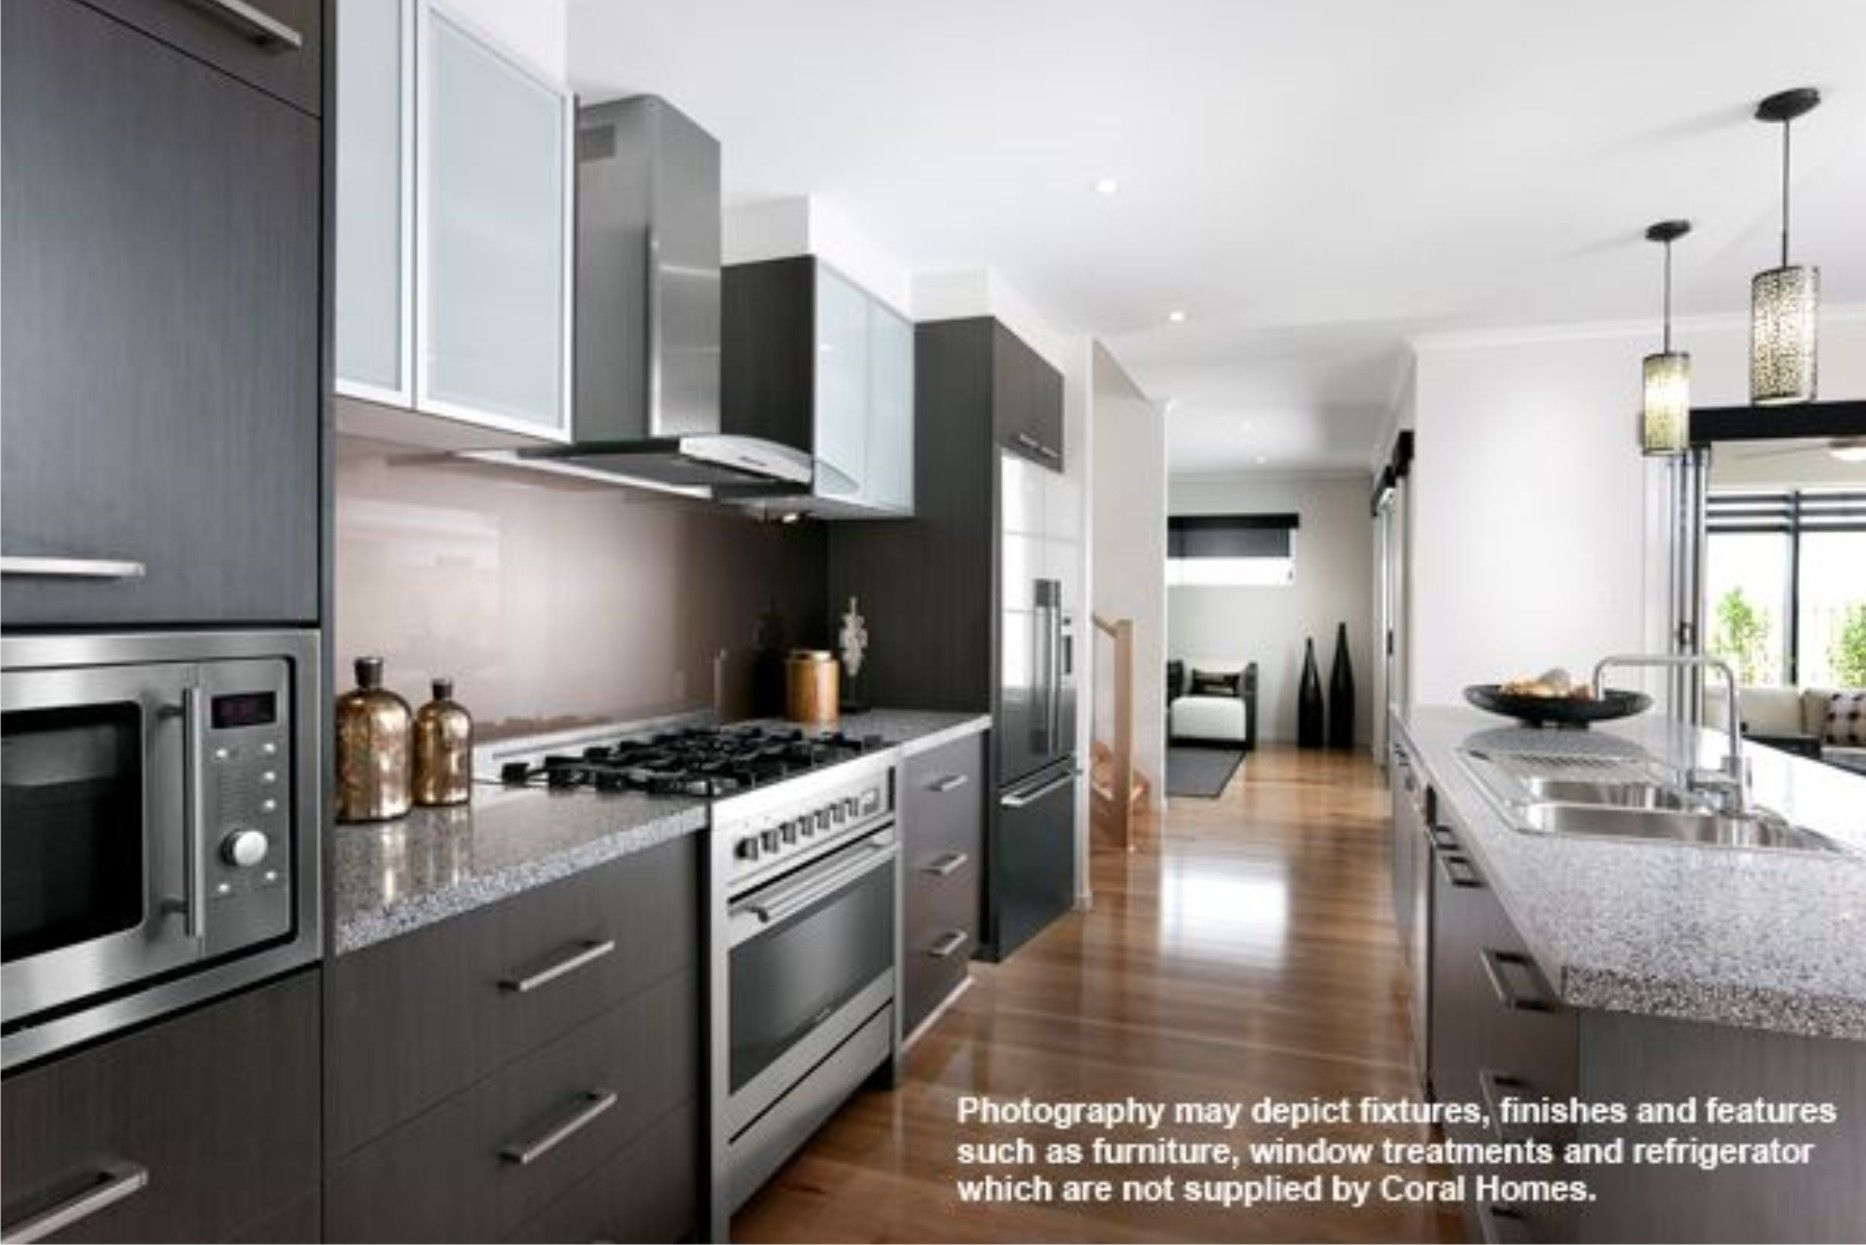 Kunststeinarbeitsplatten Create And Customise Your Dream Kitchen With Coralhomes We Re